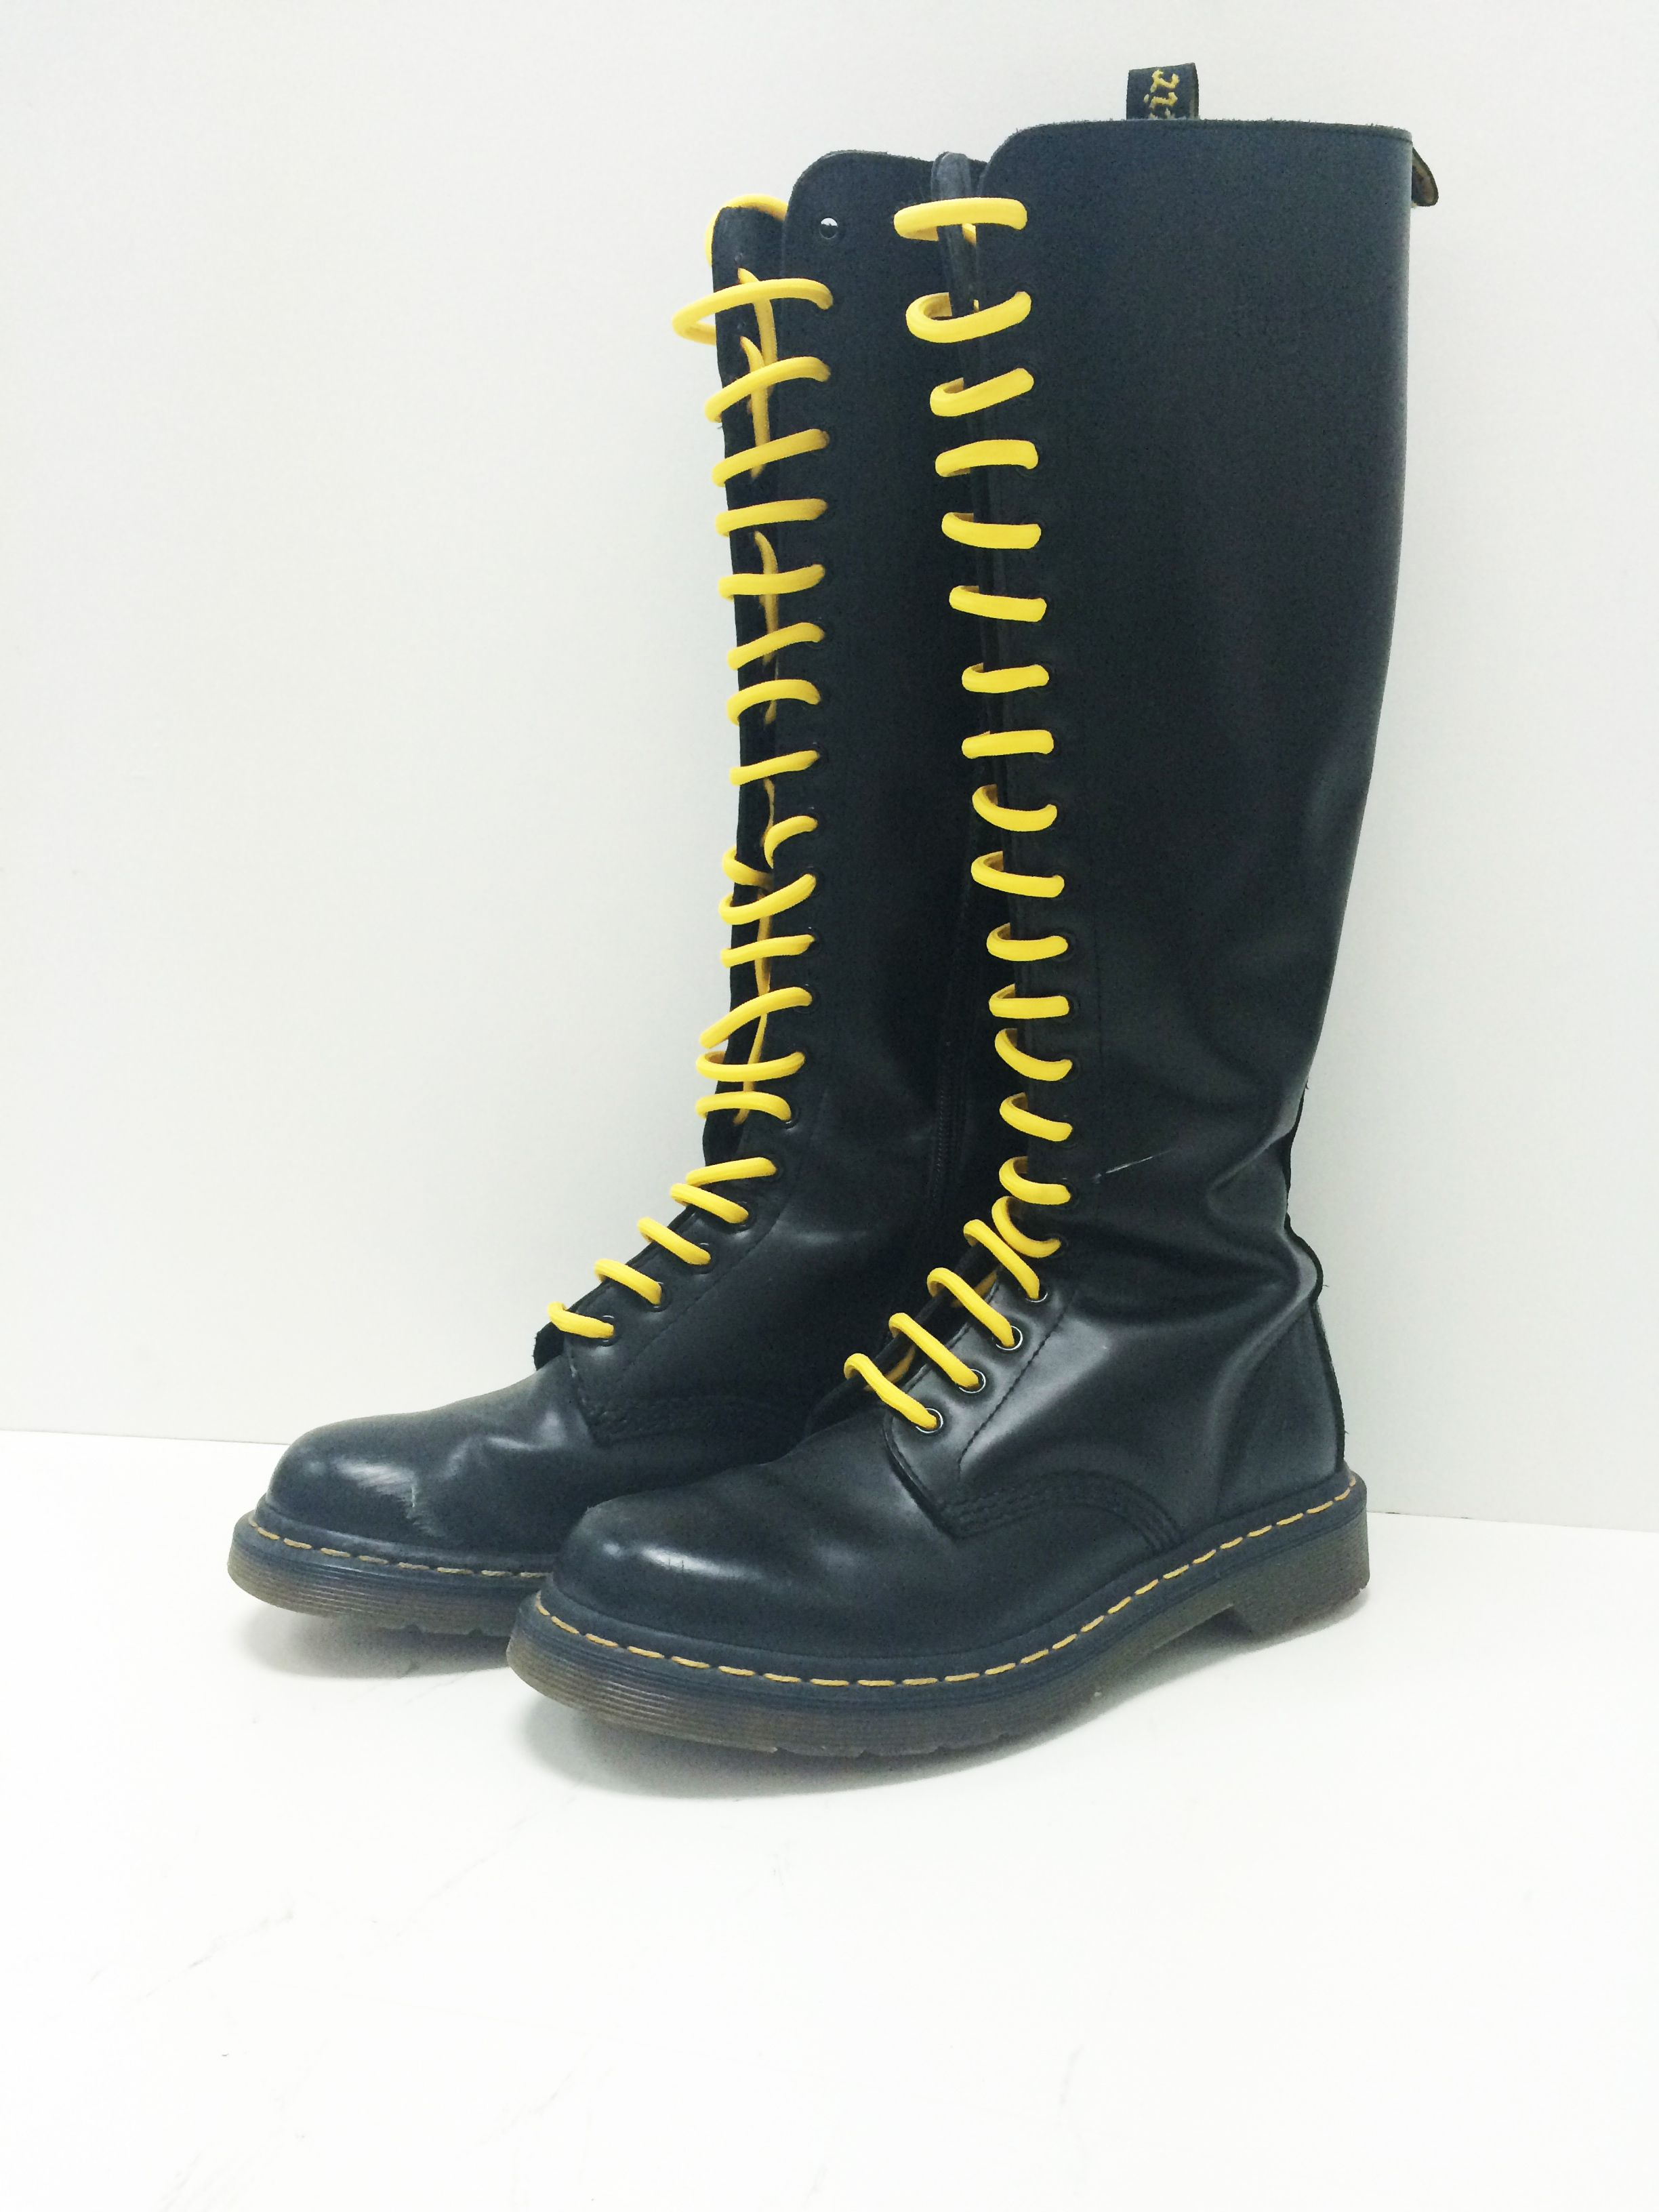 2abb4177d58d0 Dr. Martens Tall Black boots w/ yellow laces (Size 9) #S6250059 ...